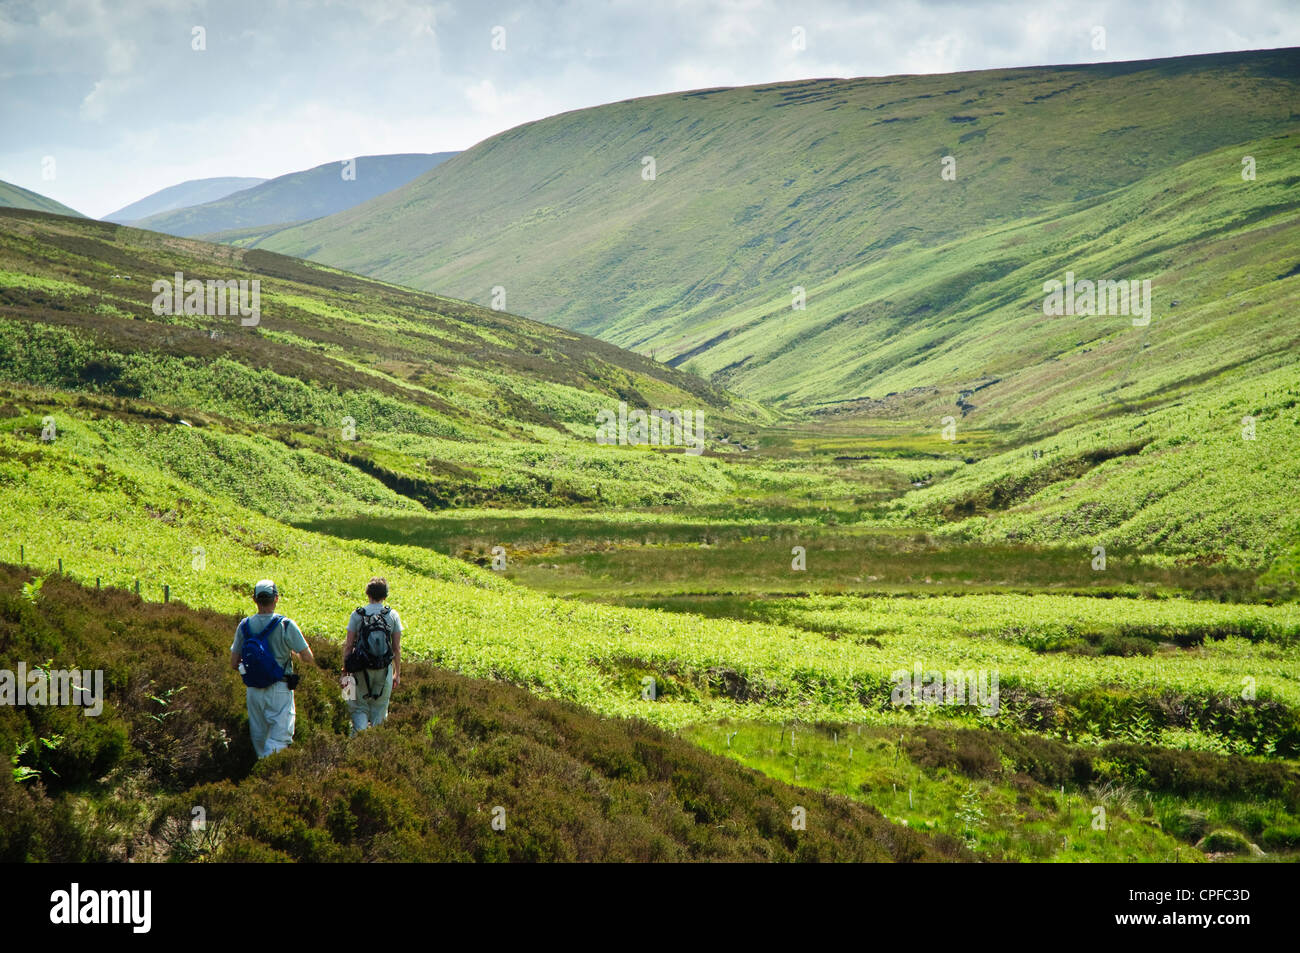 Walkers in Whitendale in the Forest of Bowland AONB - Stock Image